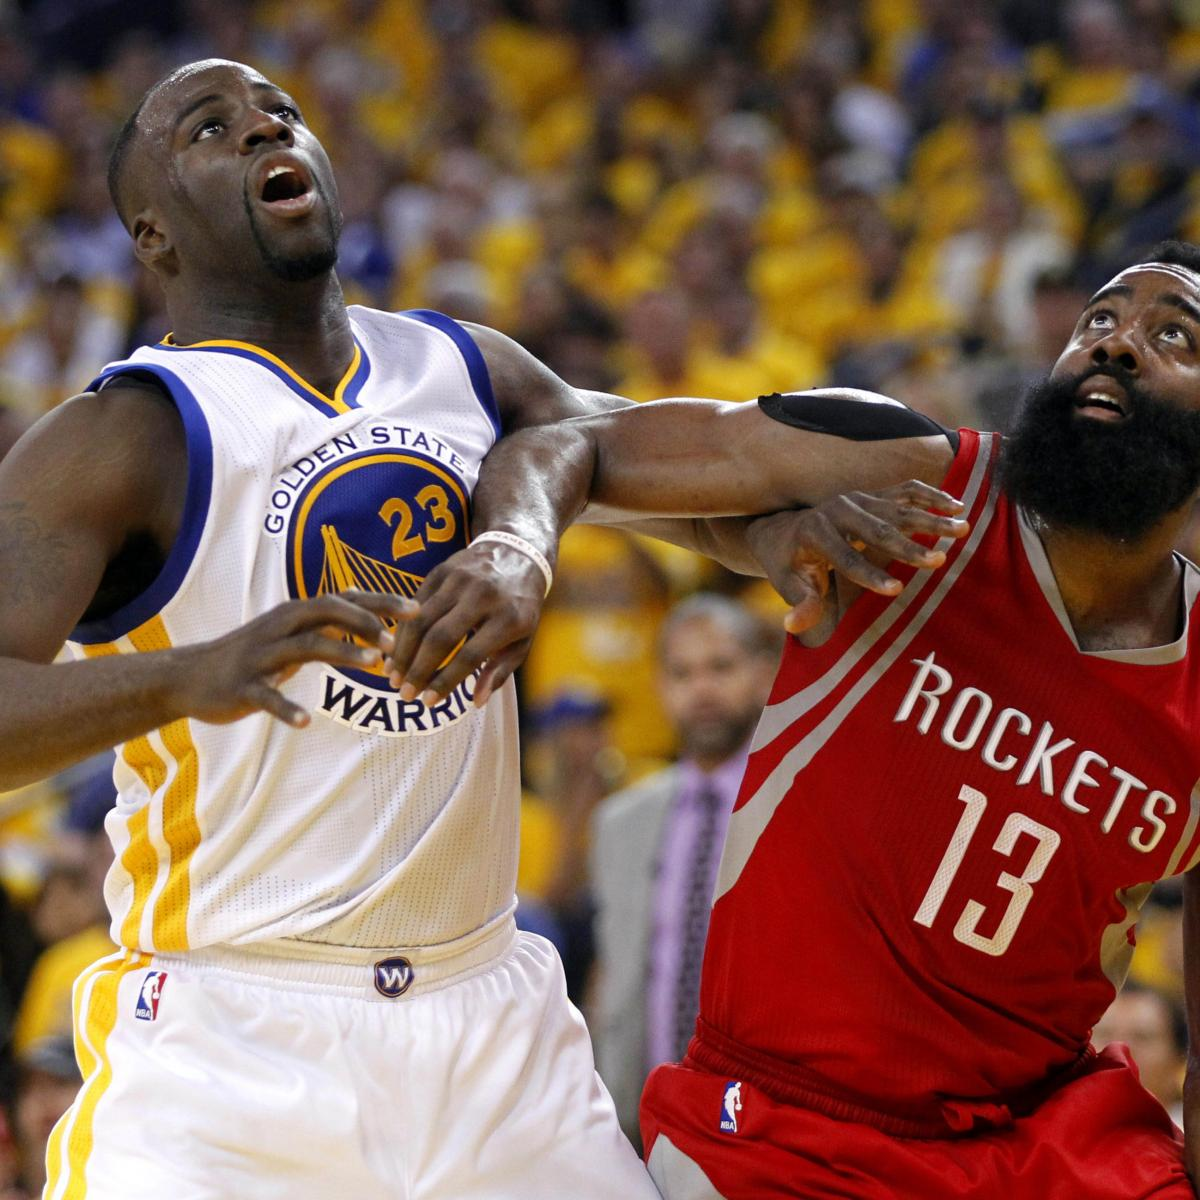 Warriors Vs Rockets Game 3 Live Stream Free: Golden State Warriors Vs. Houston Rockets: Live Score